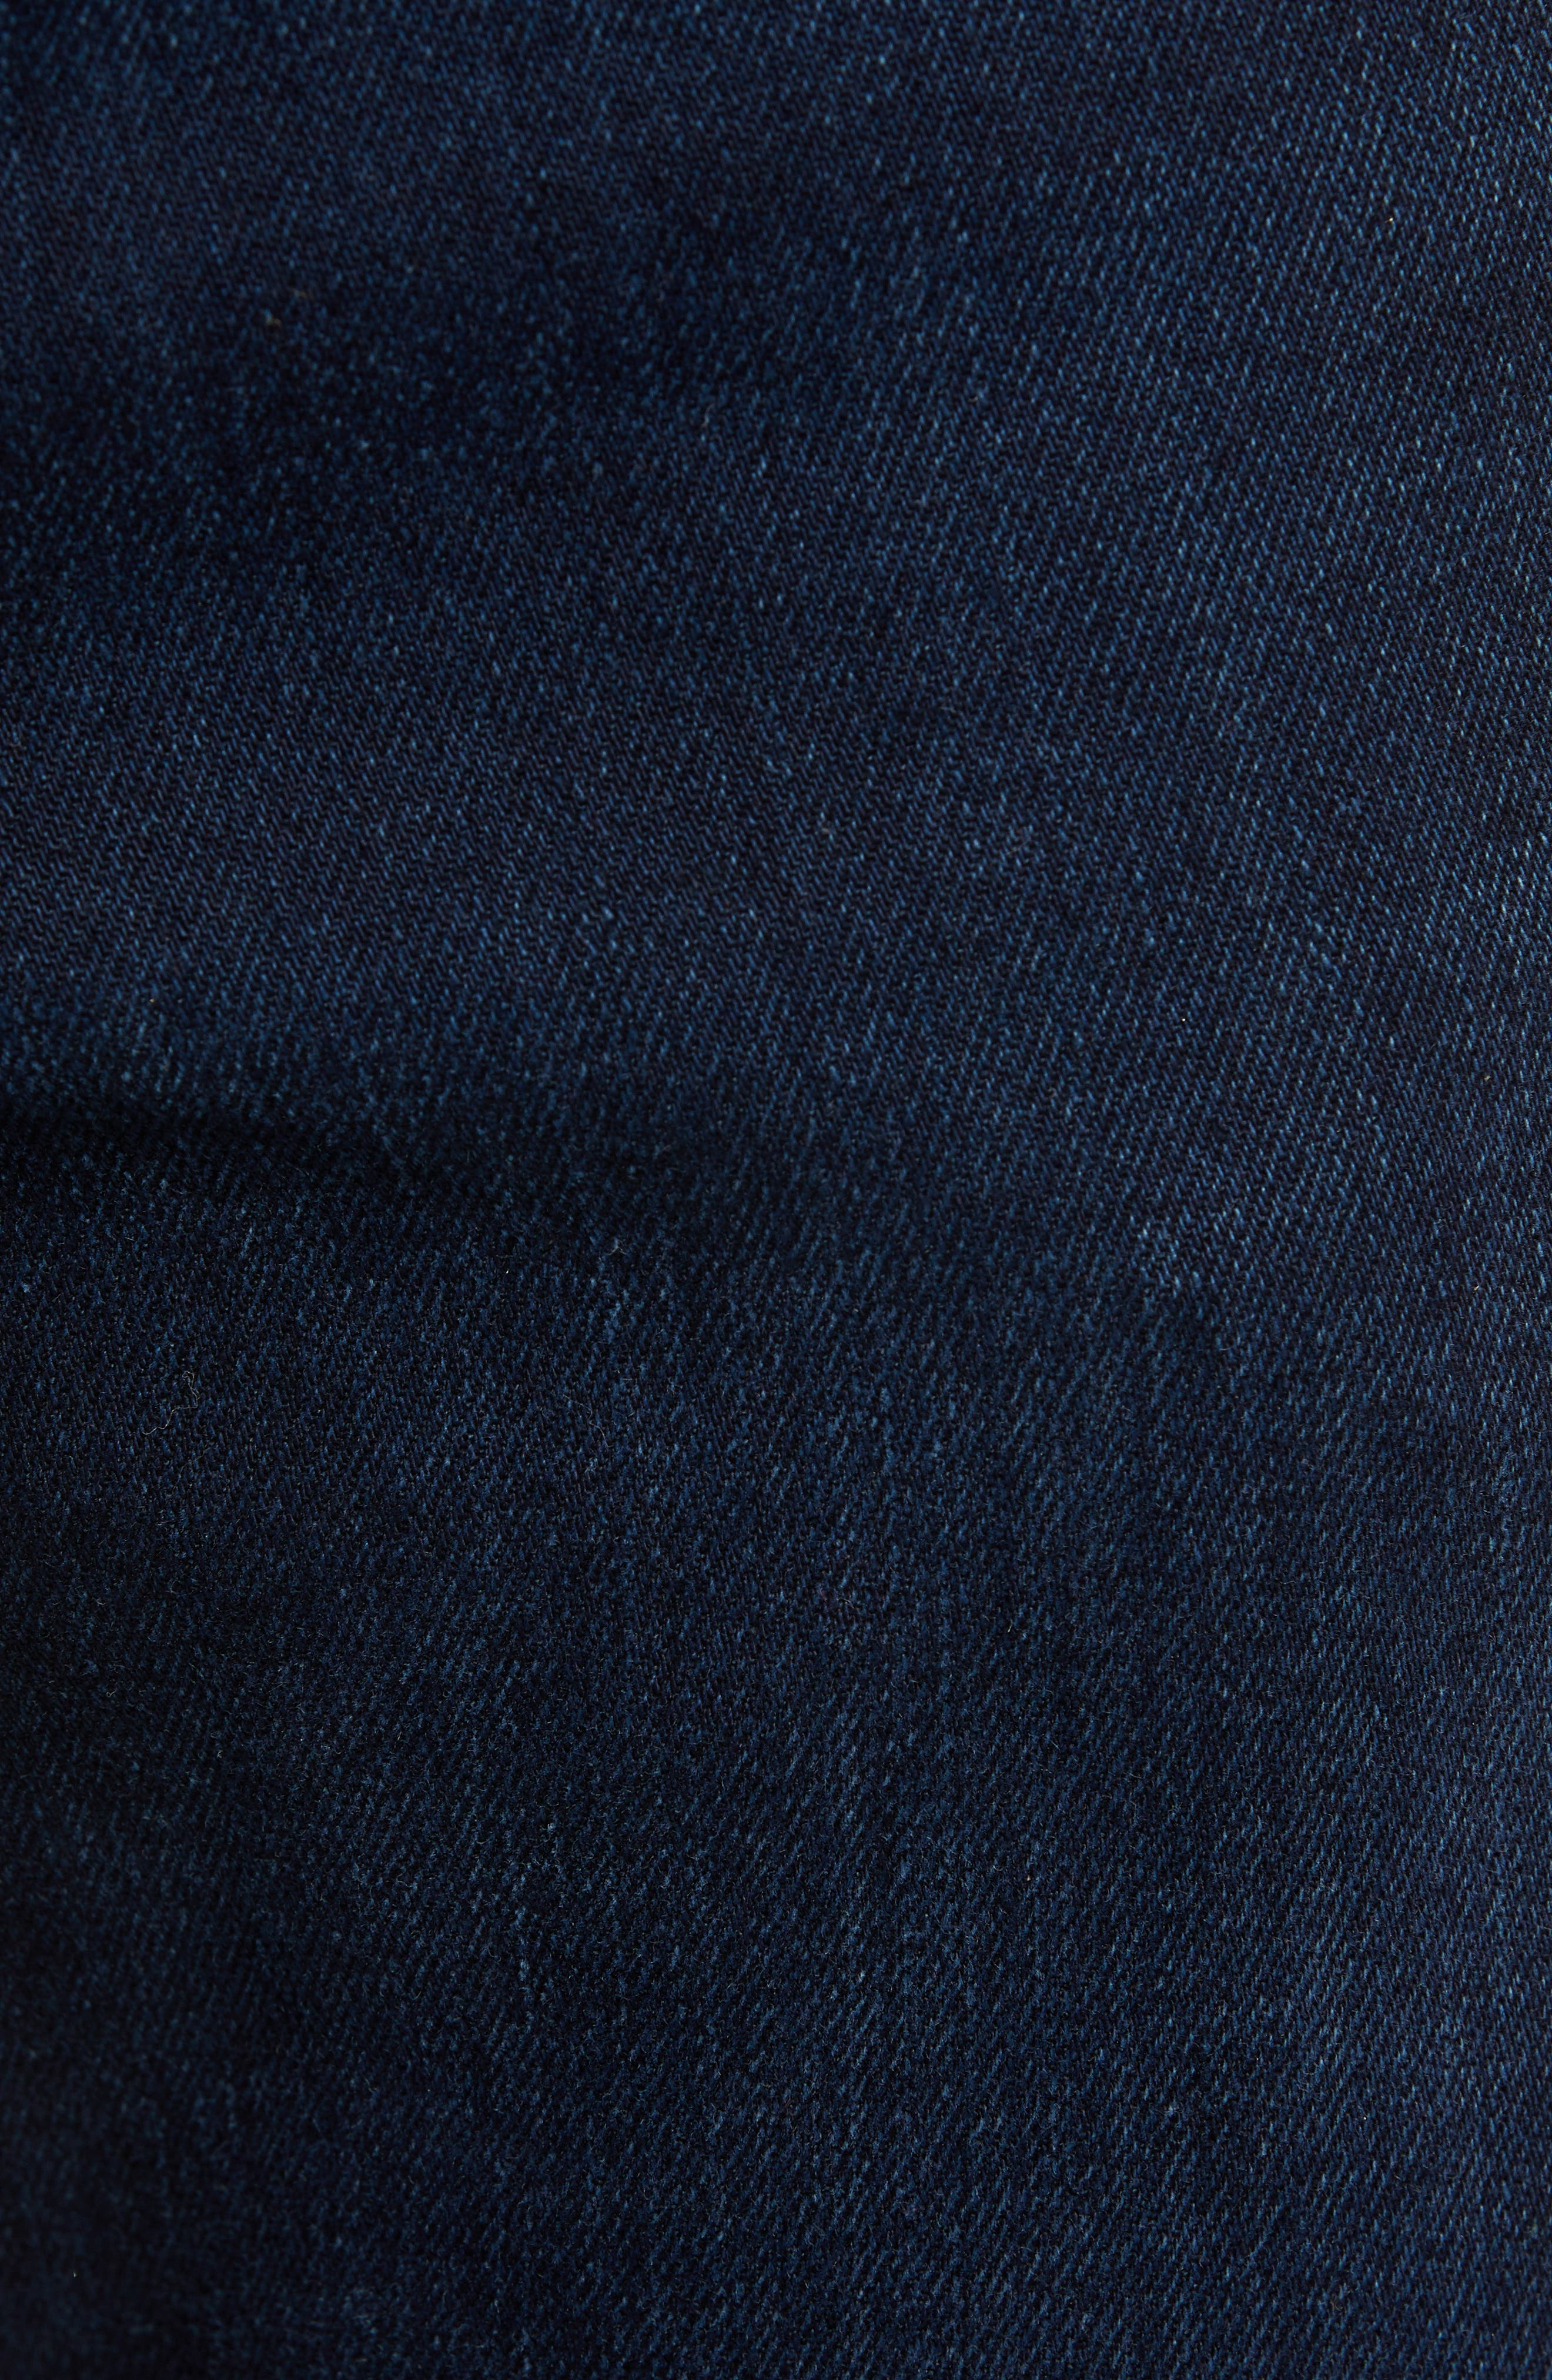 Fit 1 Skinny Fit Jeans,                             Alternate thumbnail 5, color,                             420